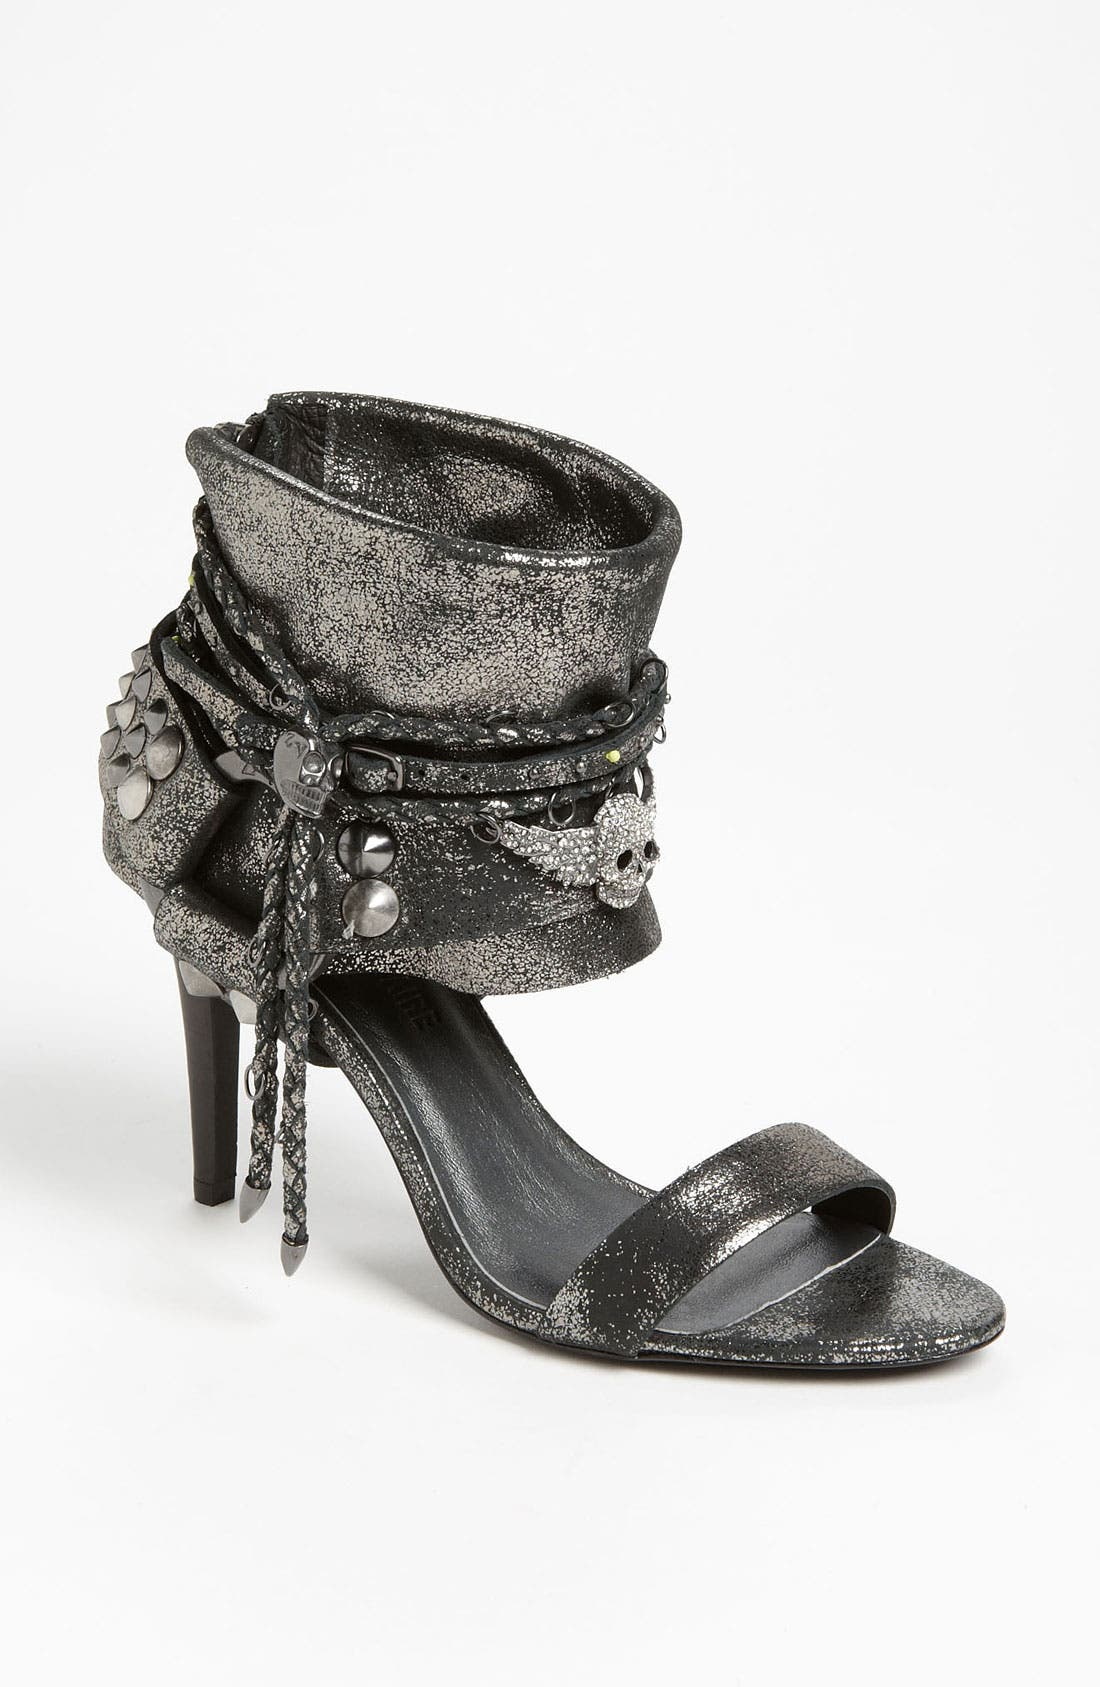 Alternate Image 1 Selected - Zadig & Voltaire 'Pam' Sandal